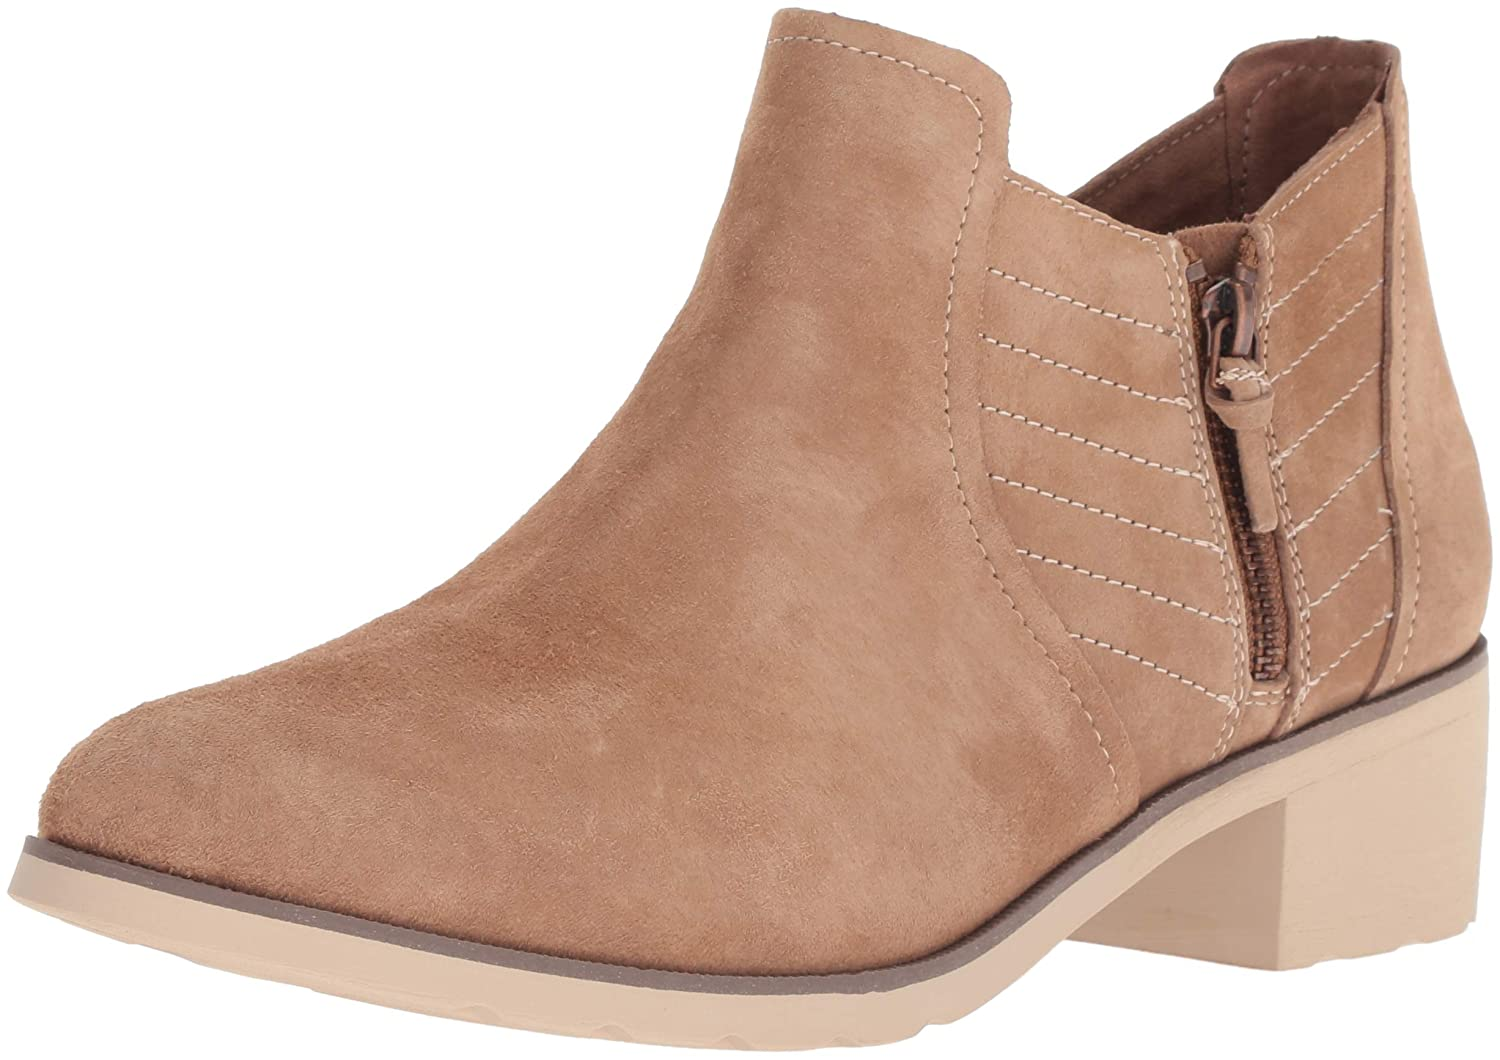 Tobacco Reef Women's Voyage Low Ankle Boot